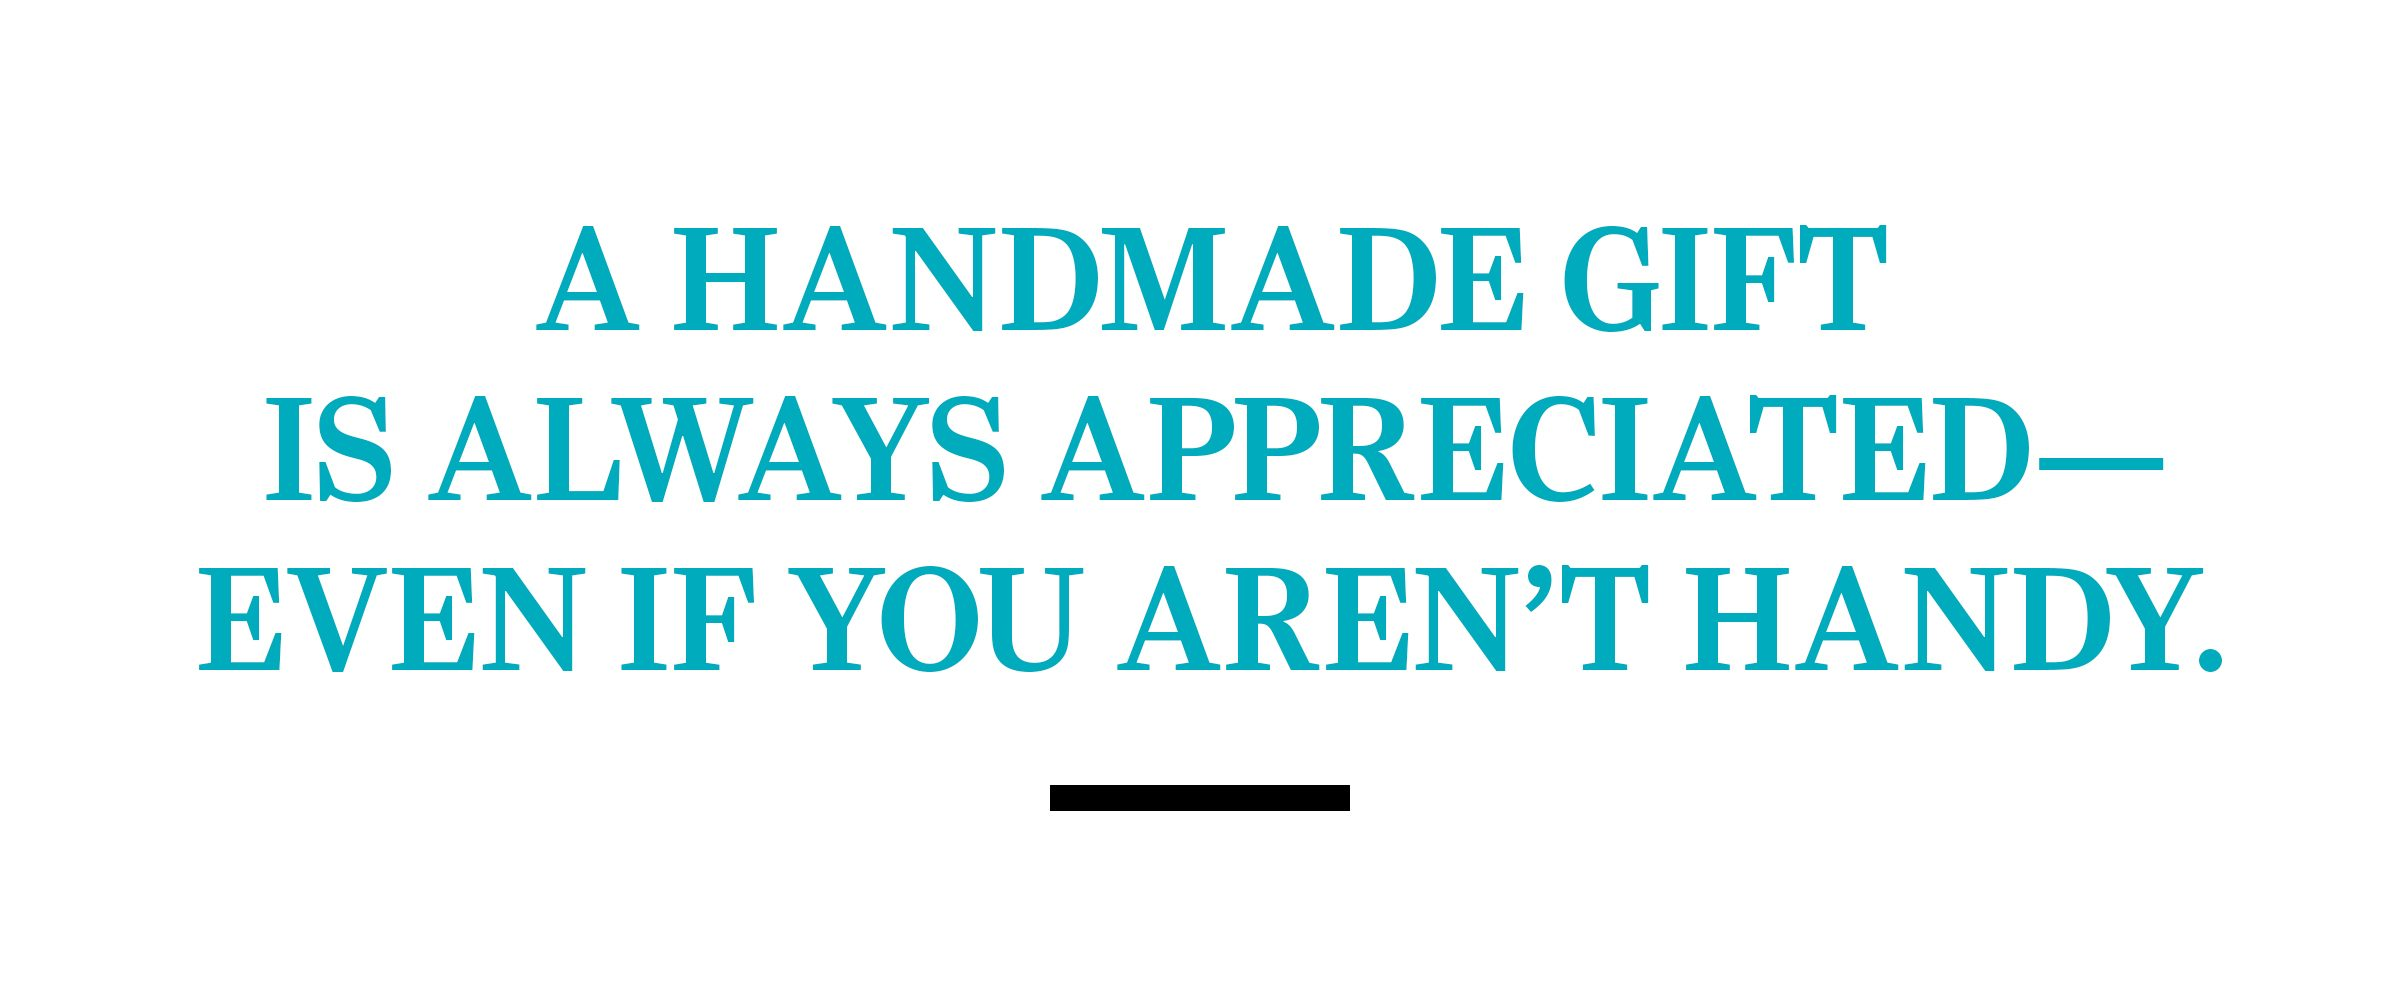 text: A handmade gift is always appreciated—even if you aren't handy.